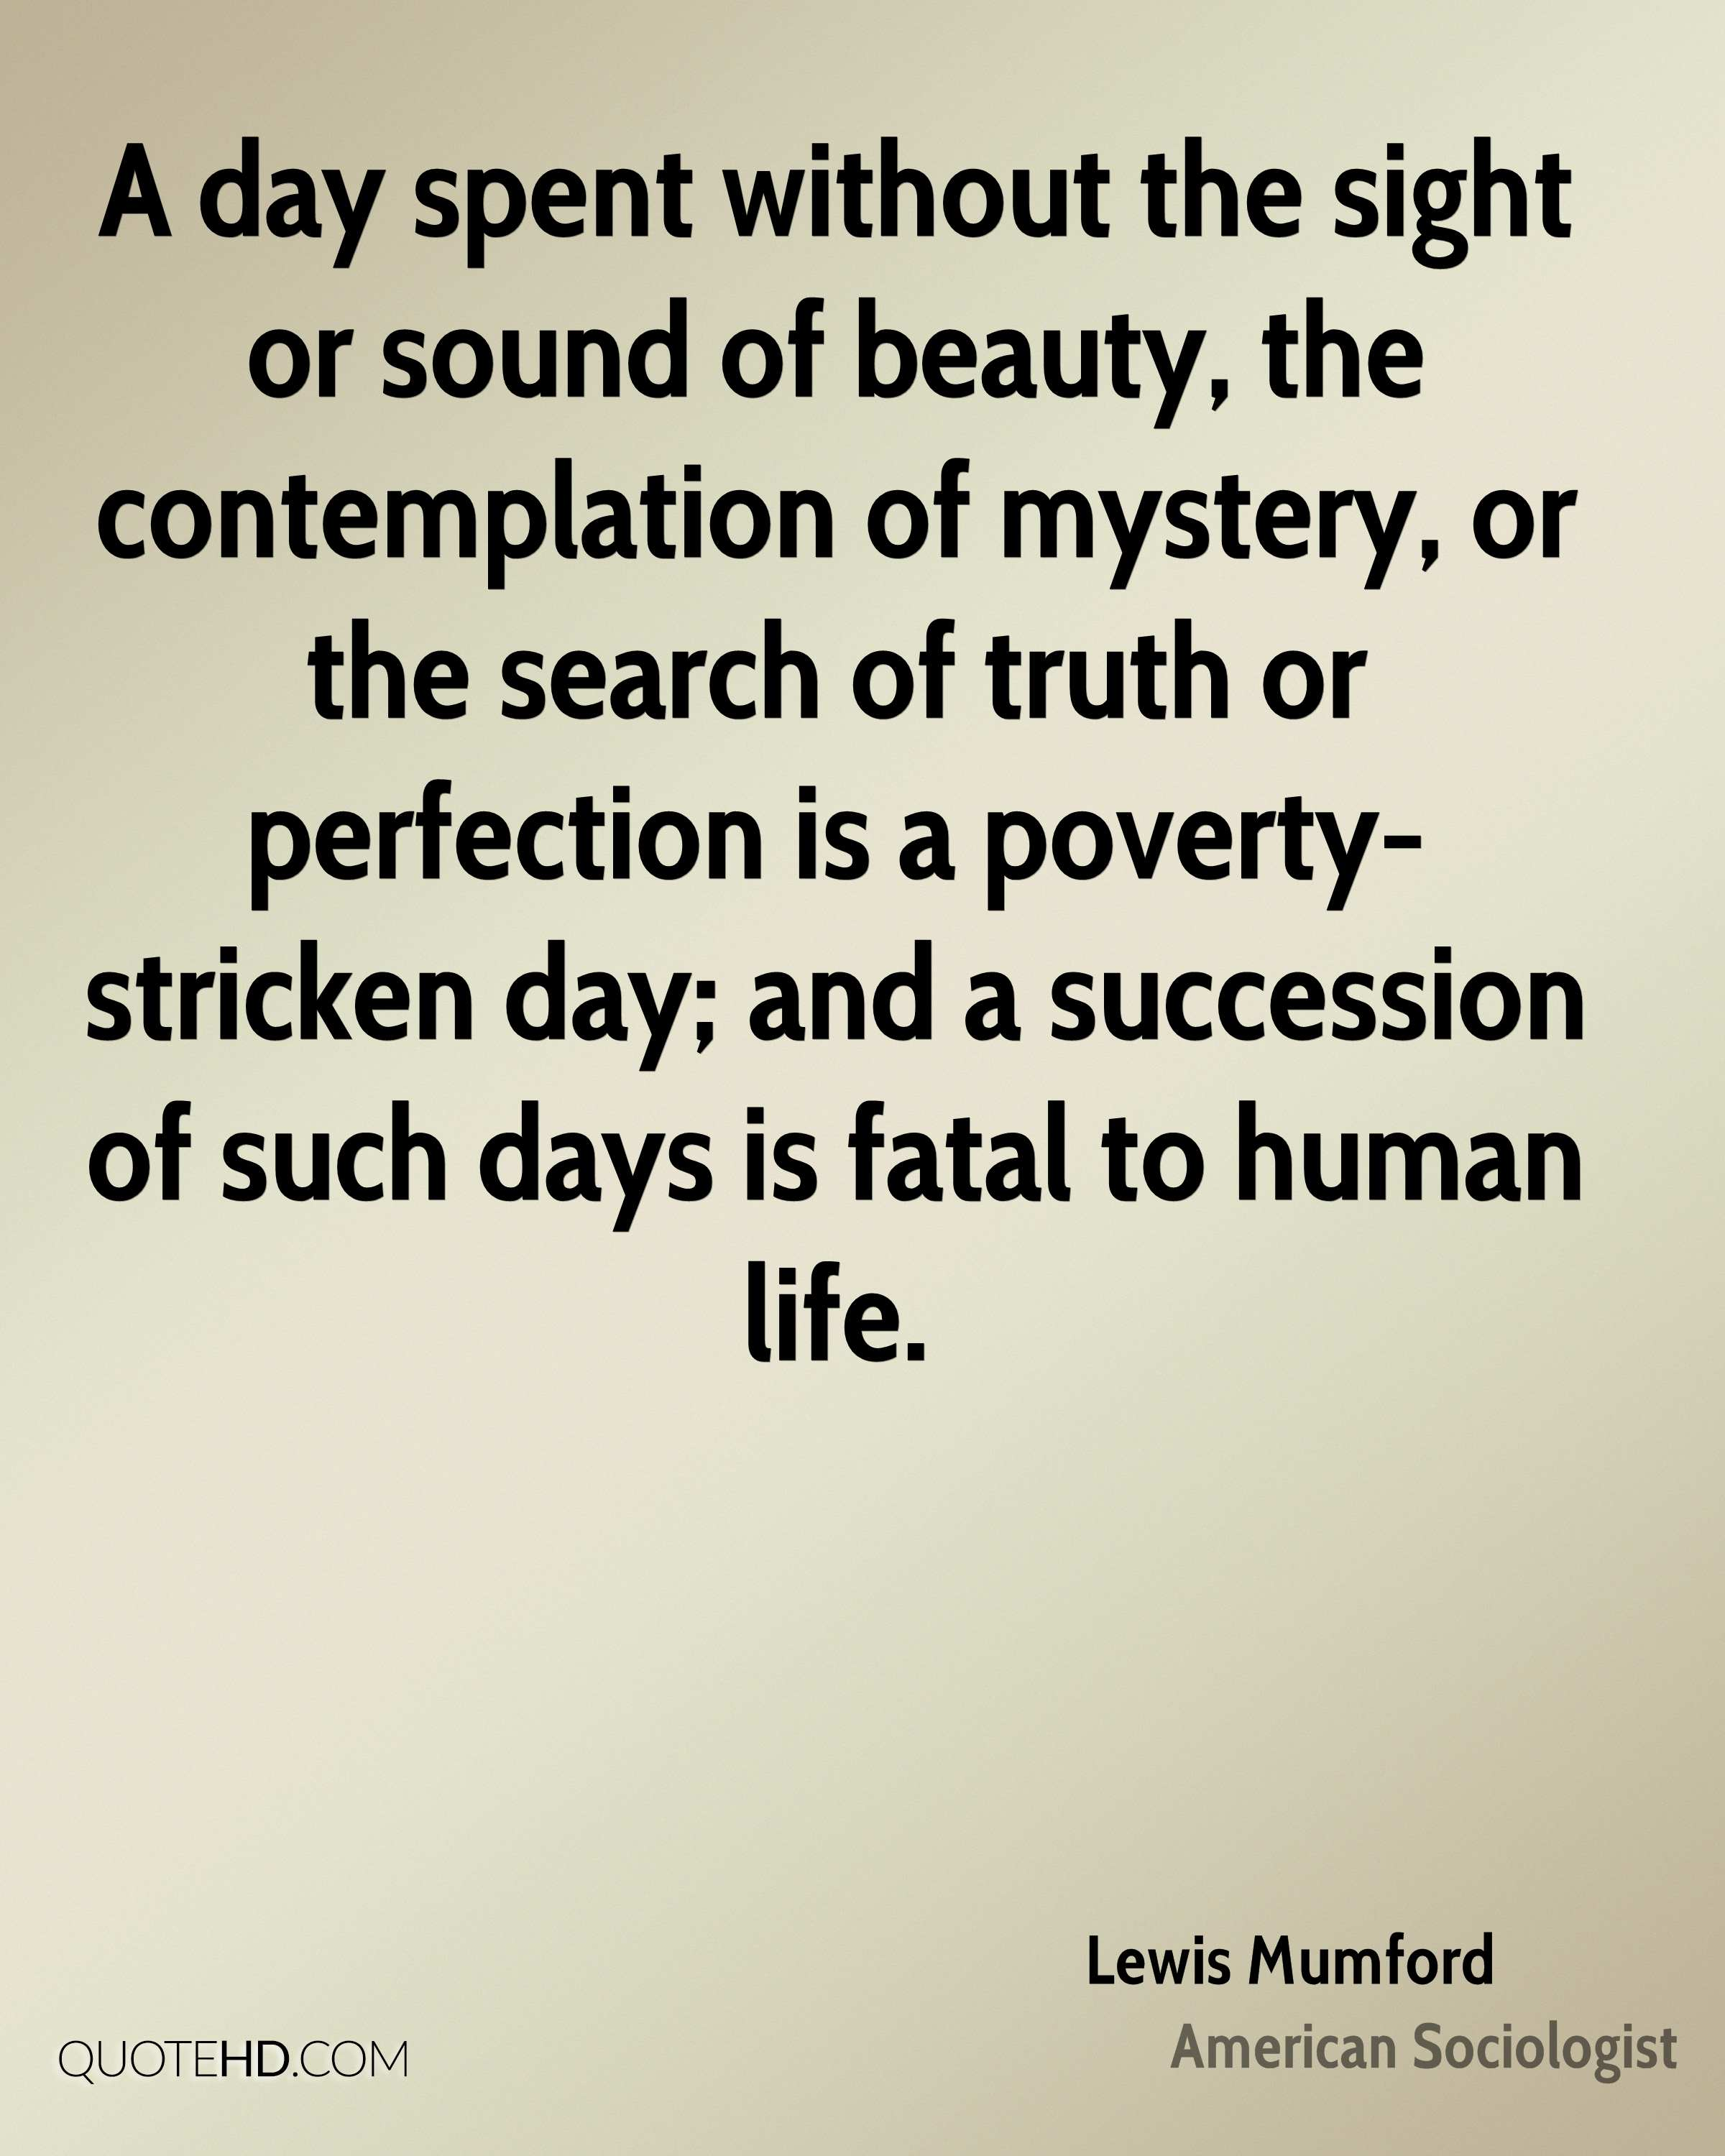 lewis mumford quotes quotehd a day spent out the sight or sound of beauty the contemplation of mystery